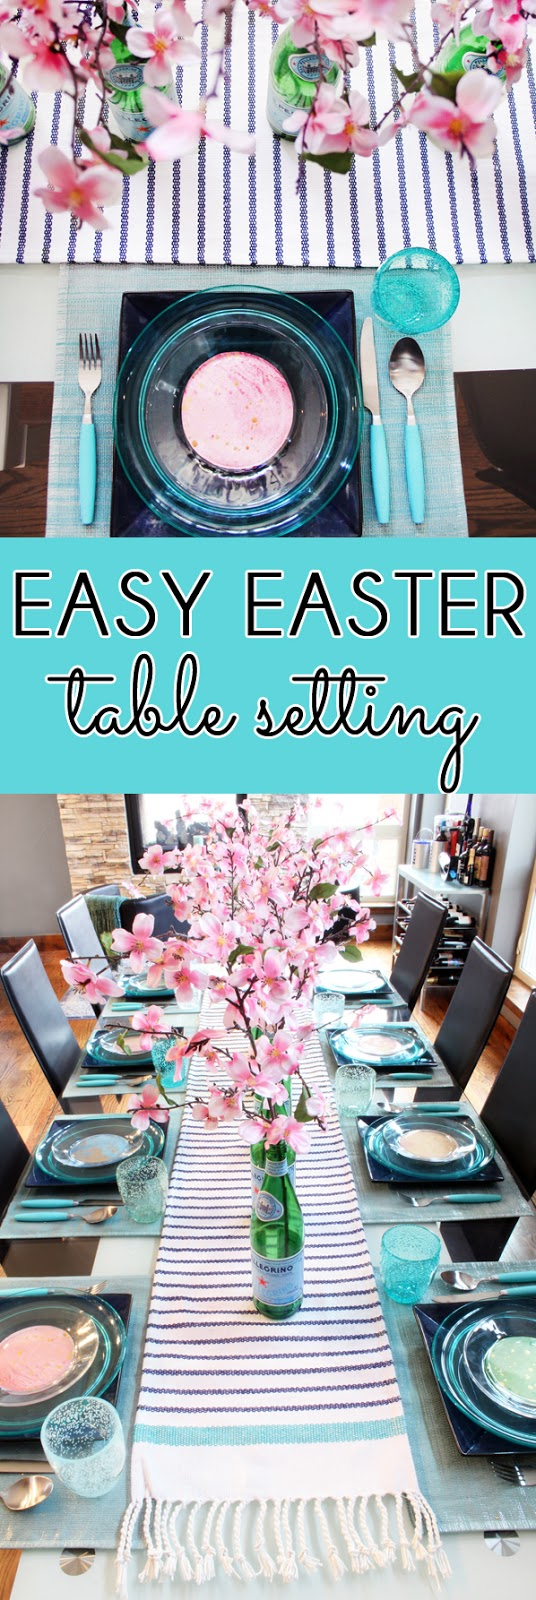 Mix indoor dish, patio dishes, and scrapbook paper for an easy Easter tablescape